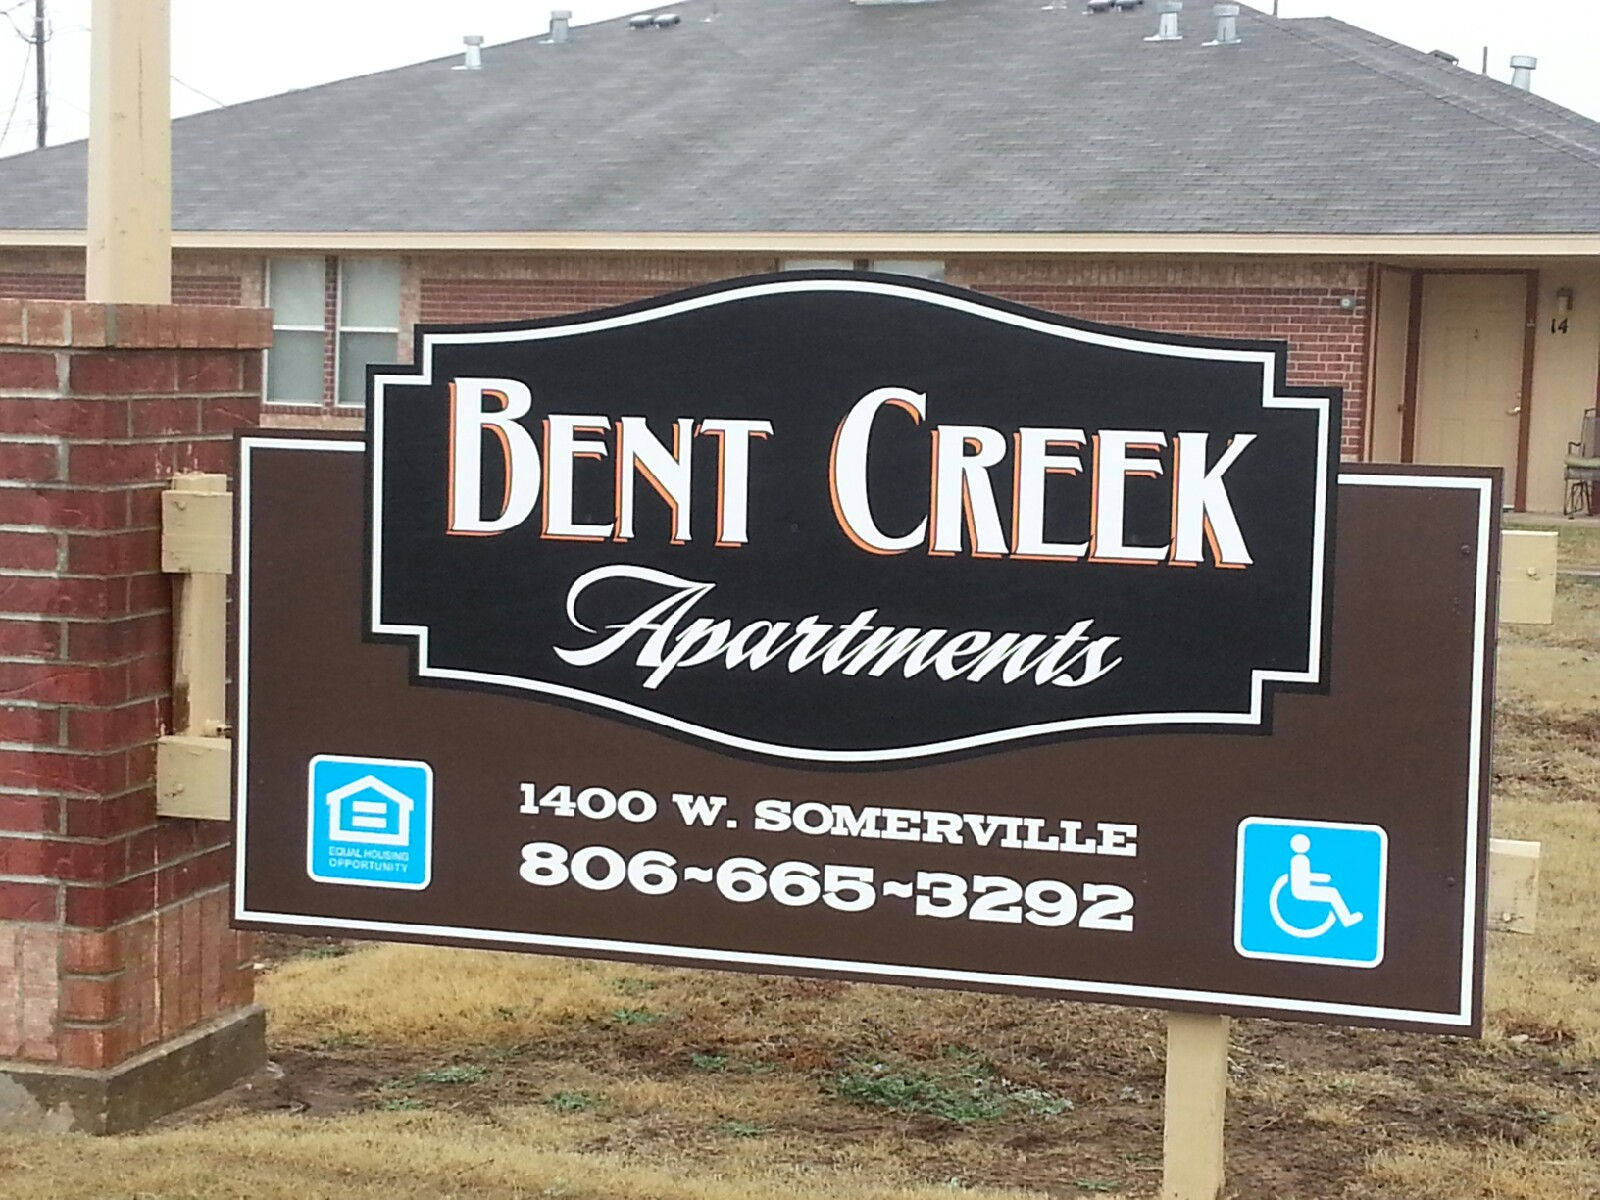 Bent Creek I Apartments